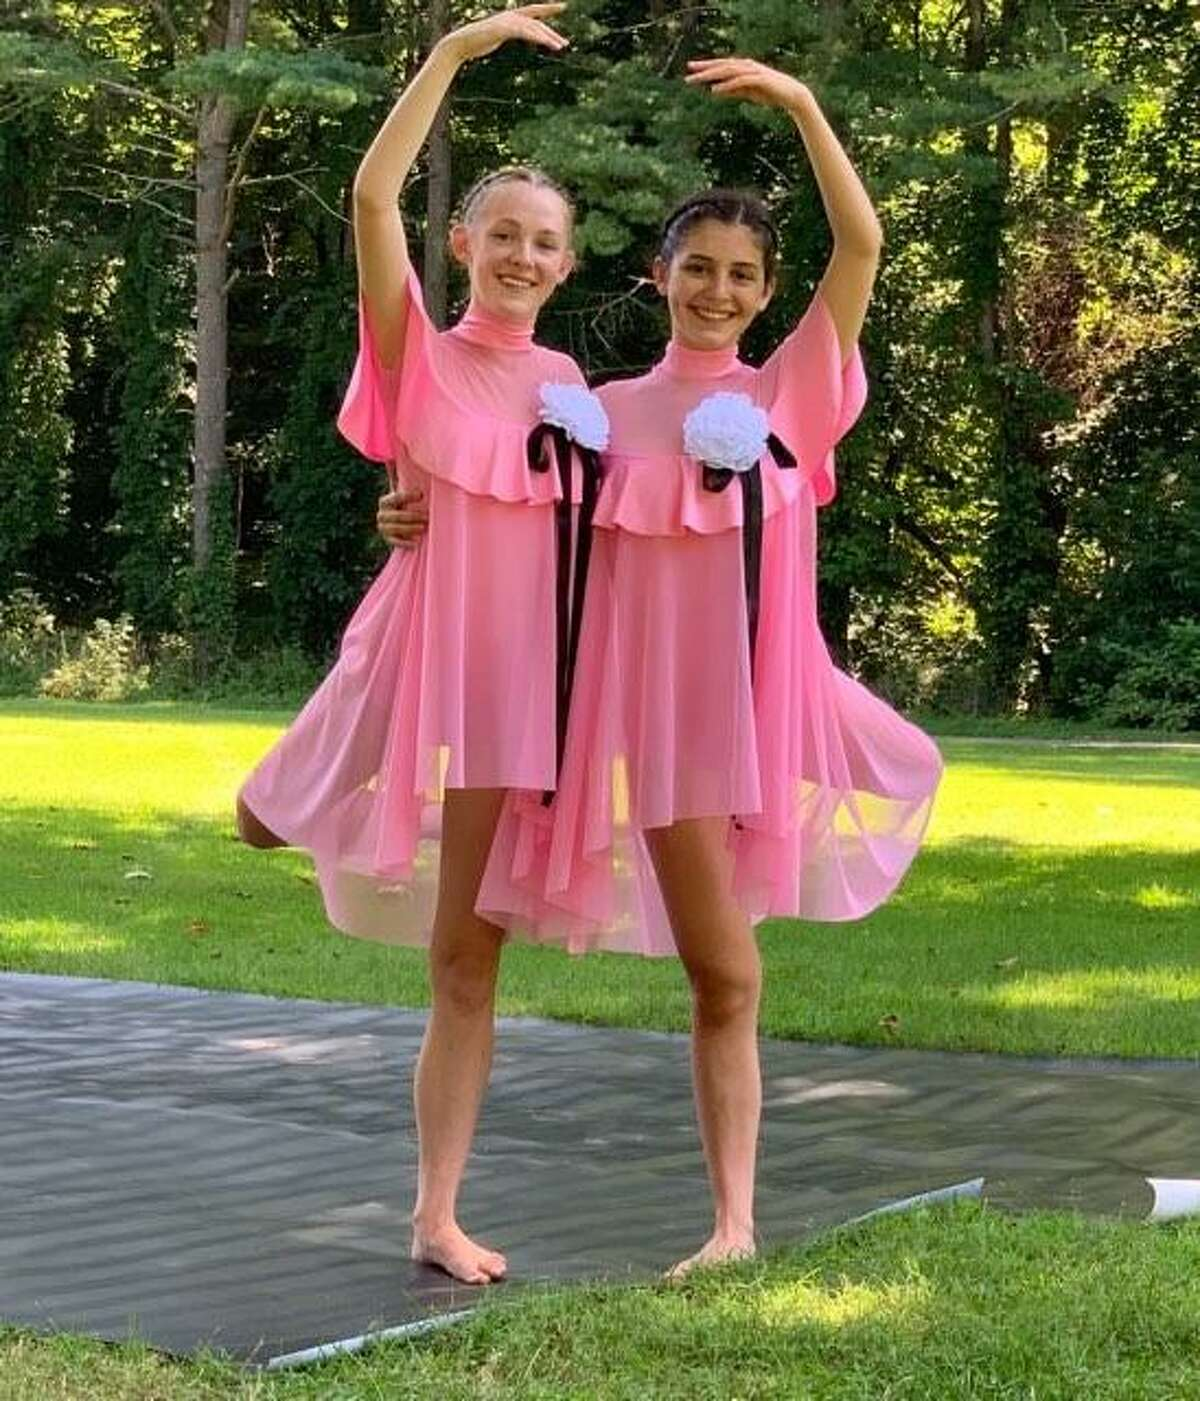 Lindsey Federowicz and Gigi Esposito perform as Tweedle Dee and Tweedle Dum in a duet choreographed by Studio D Director Rebecca Anderson Darling.